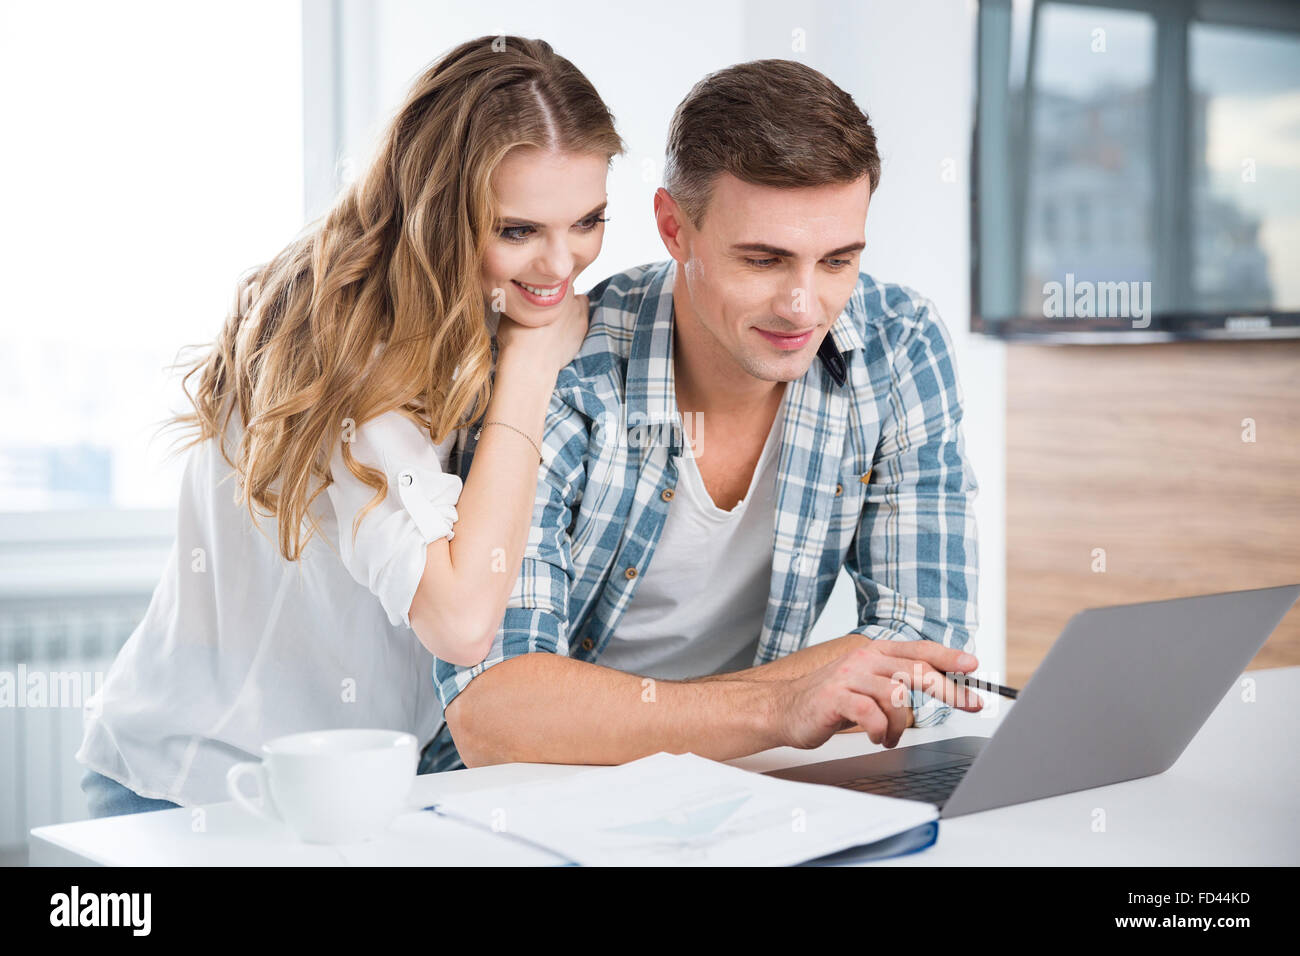 Beautiful couple using laptop and working together at home - Stock Image